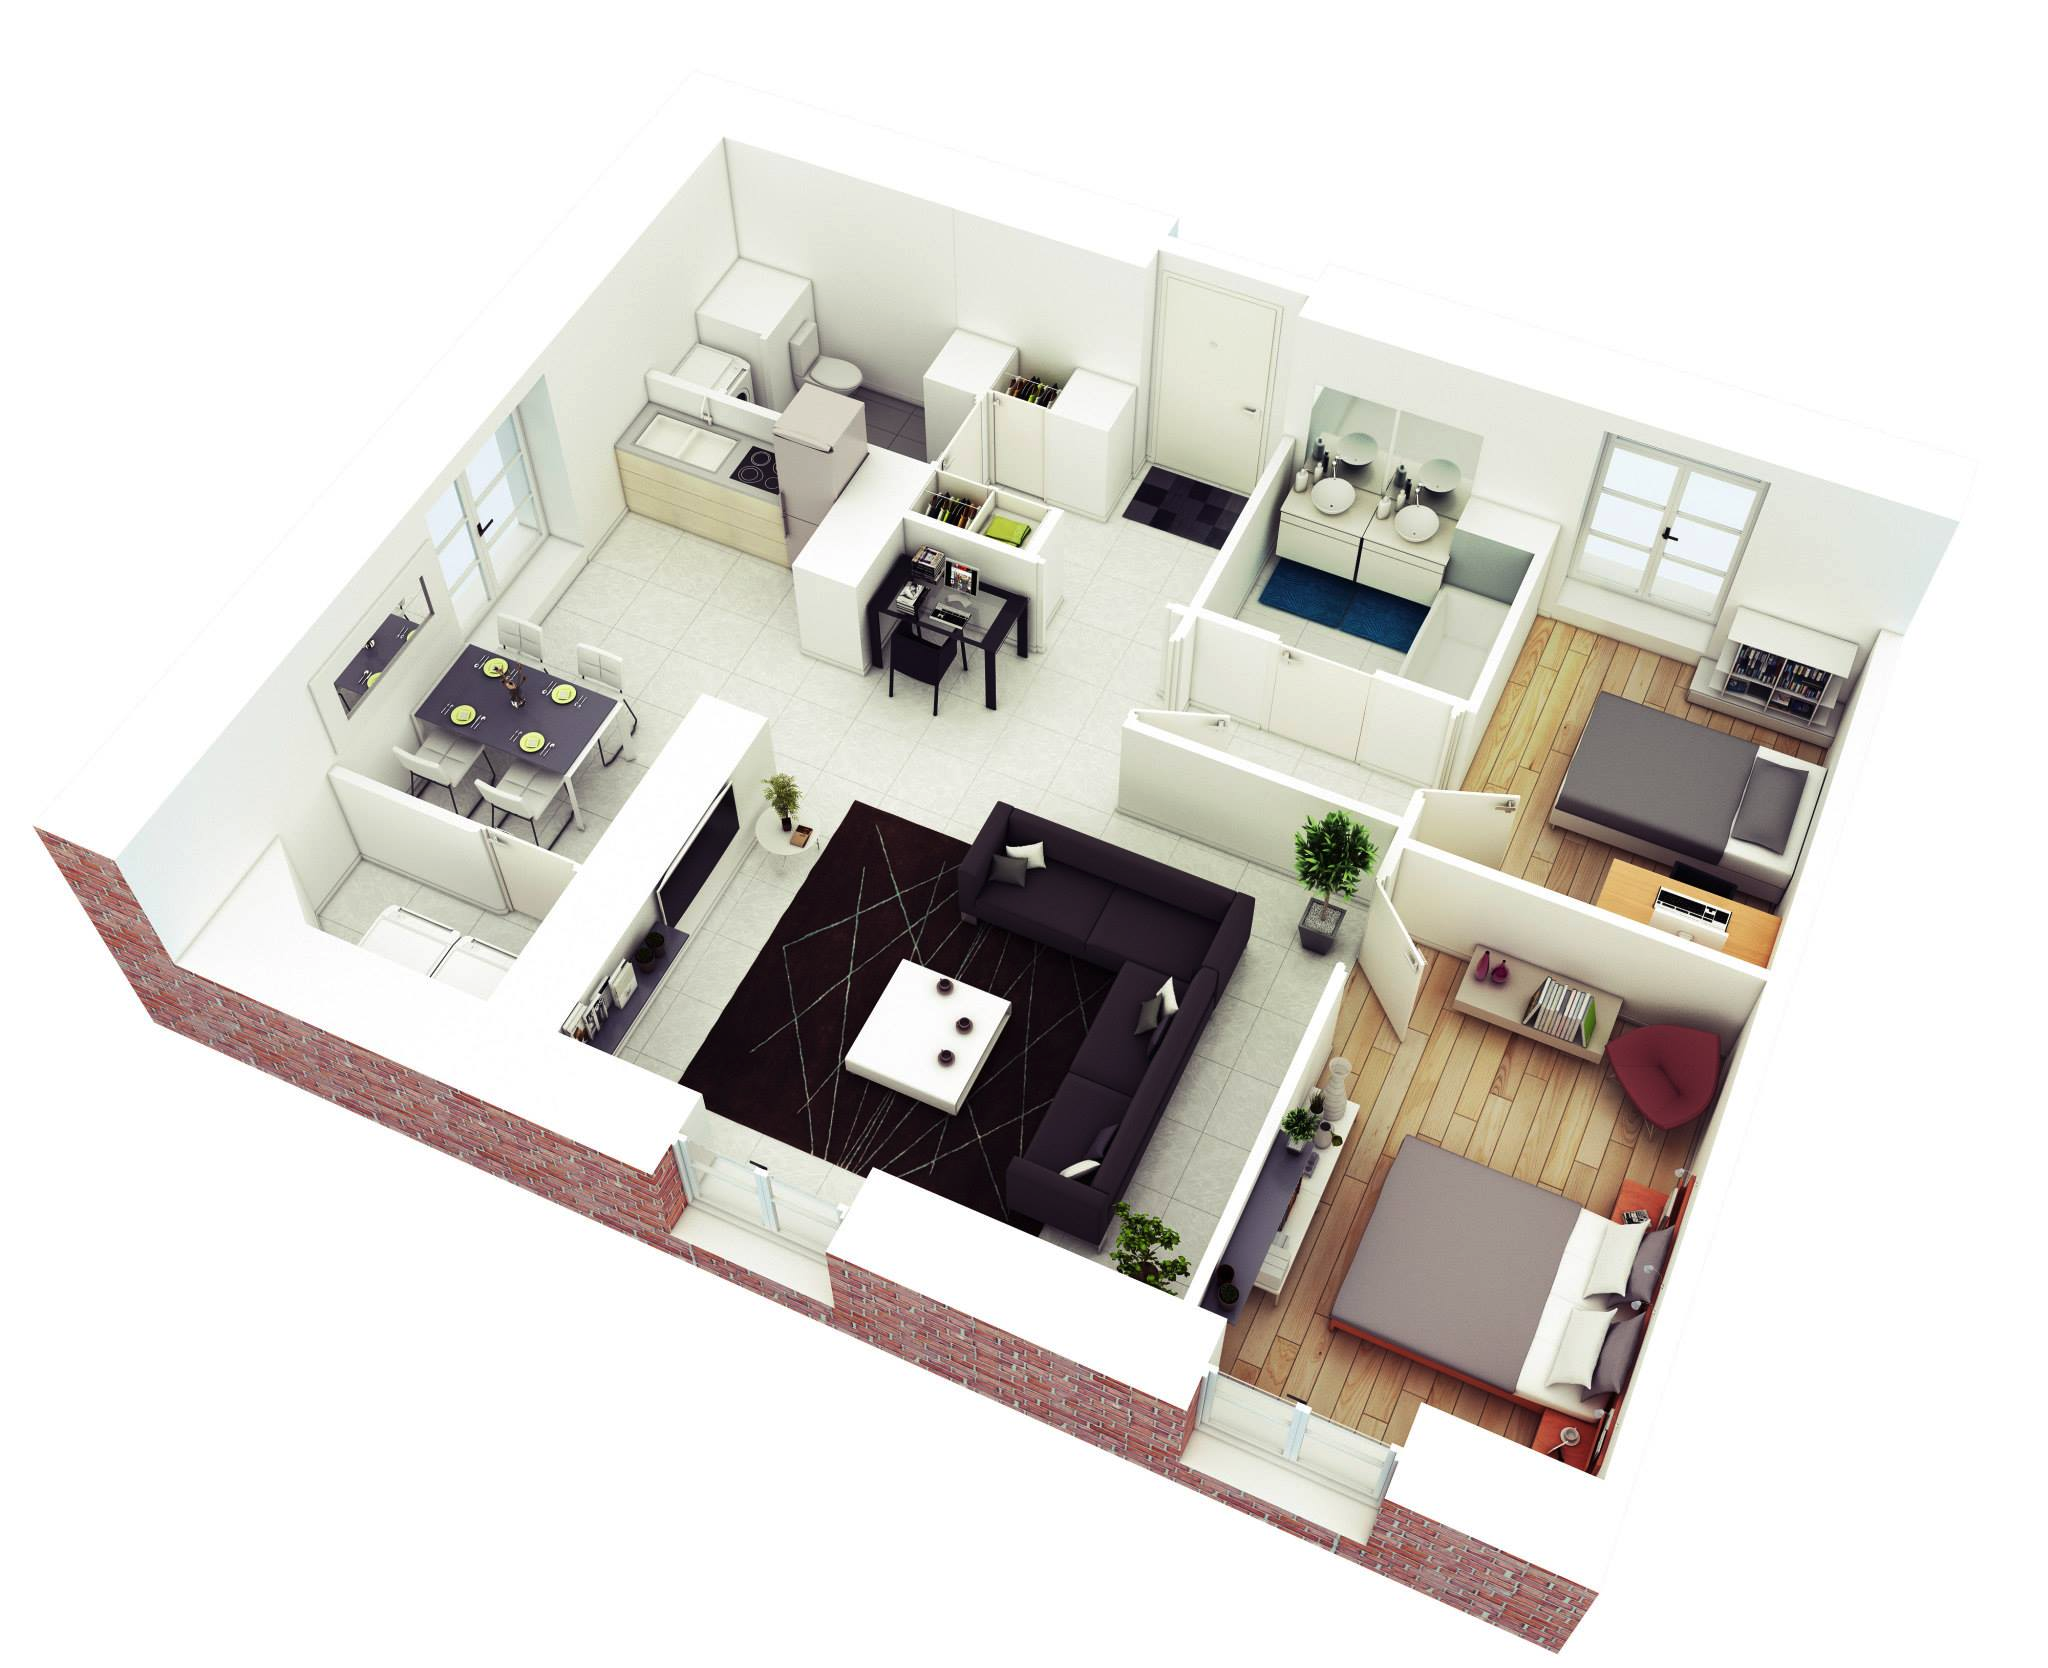 25 more 2 bedroom 3d floor plans - Housing Plans